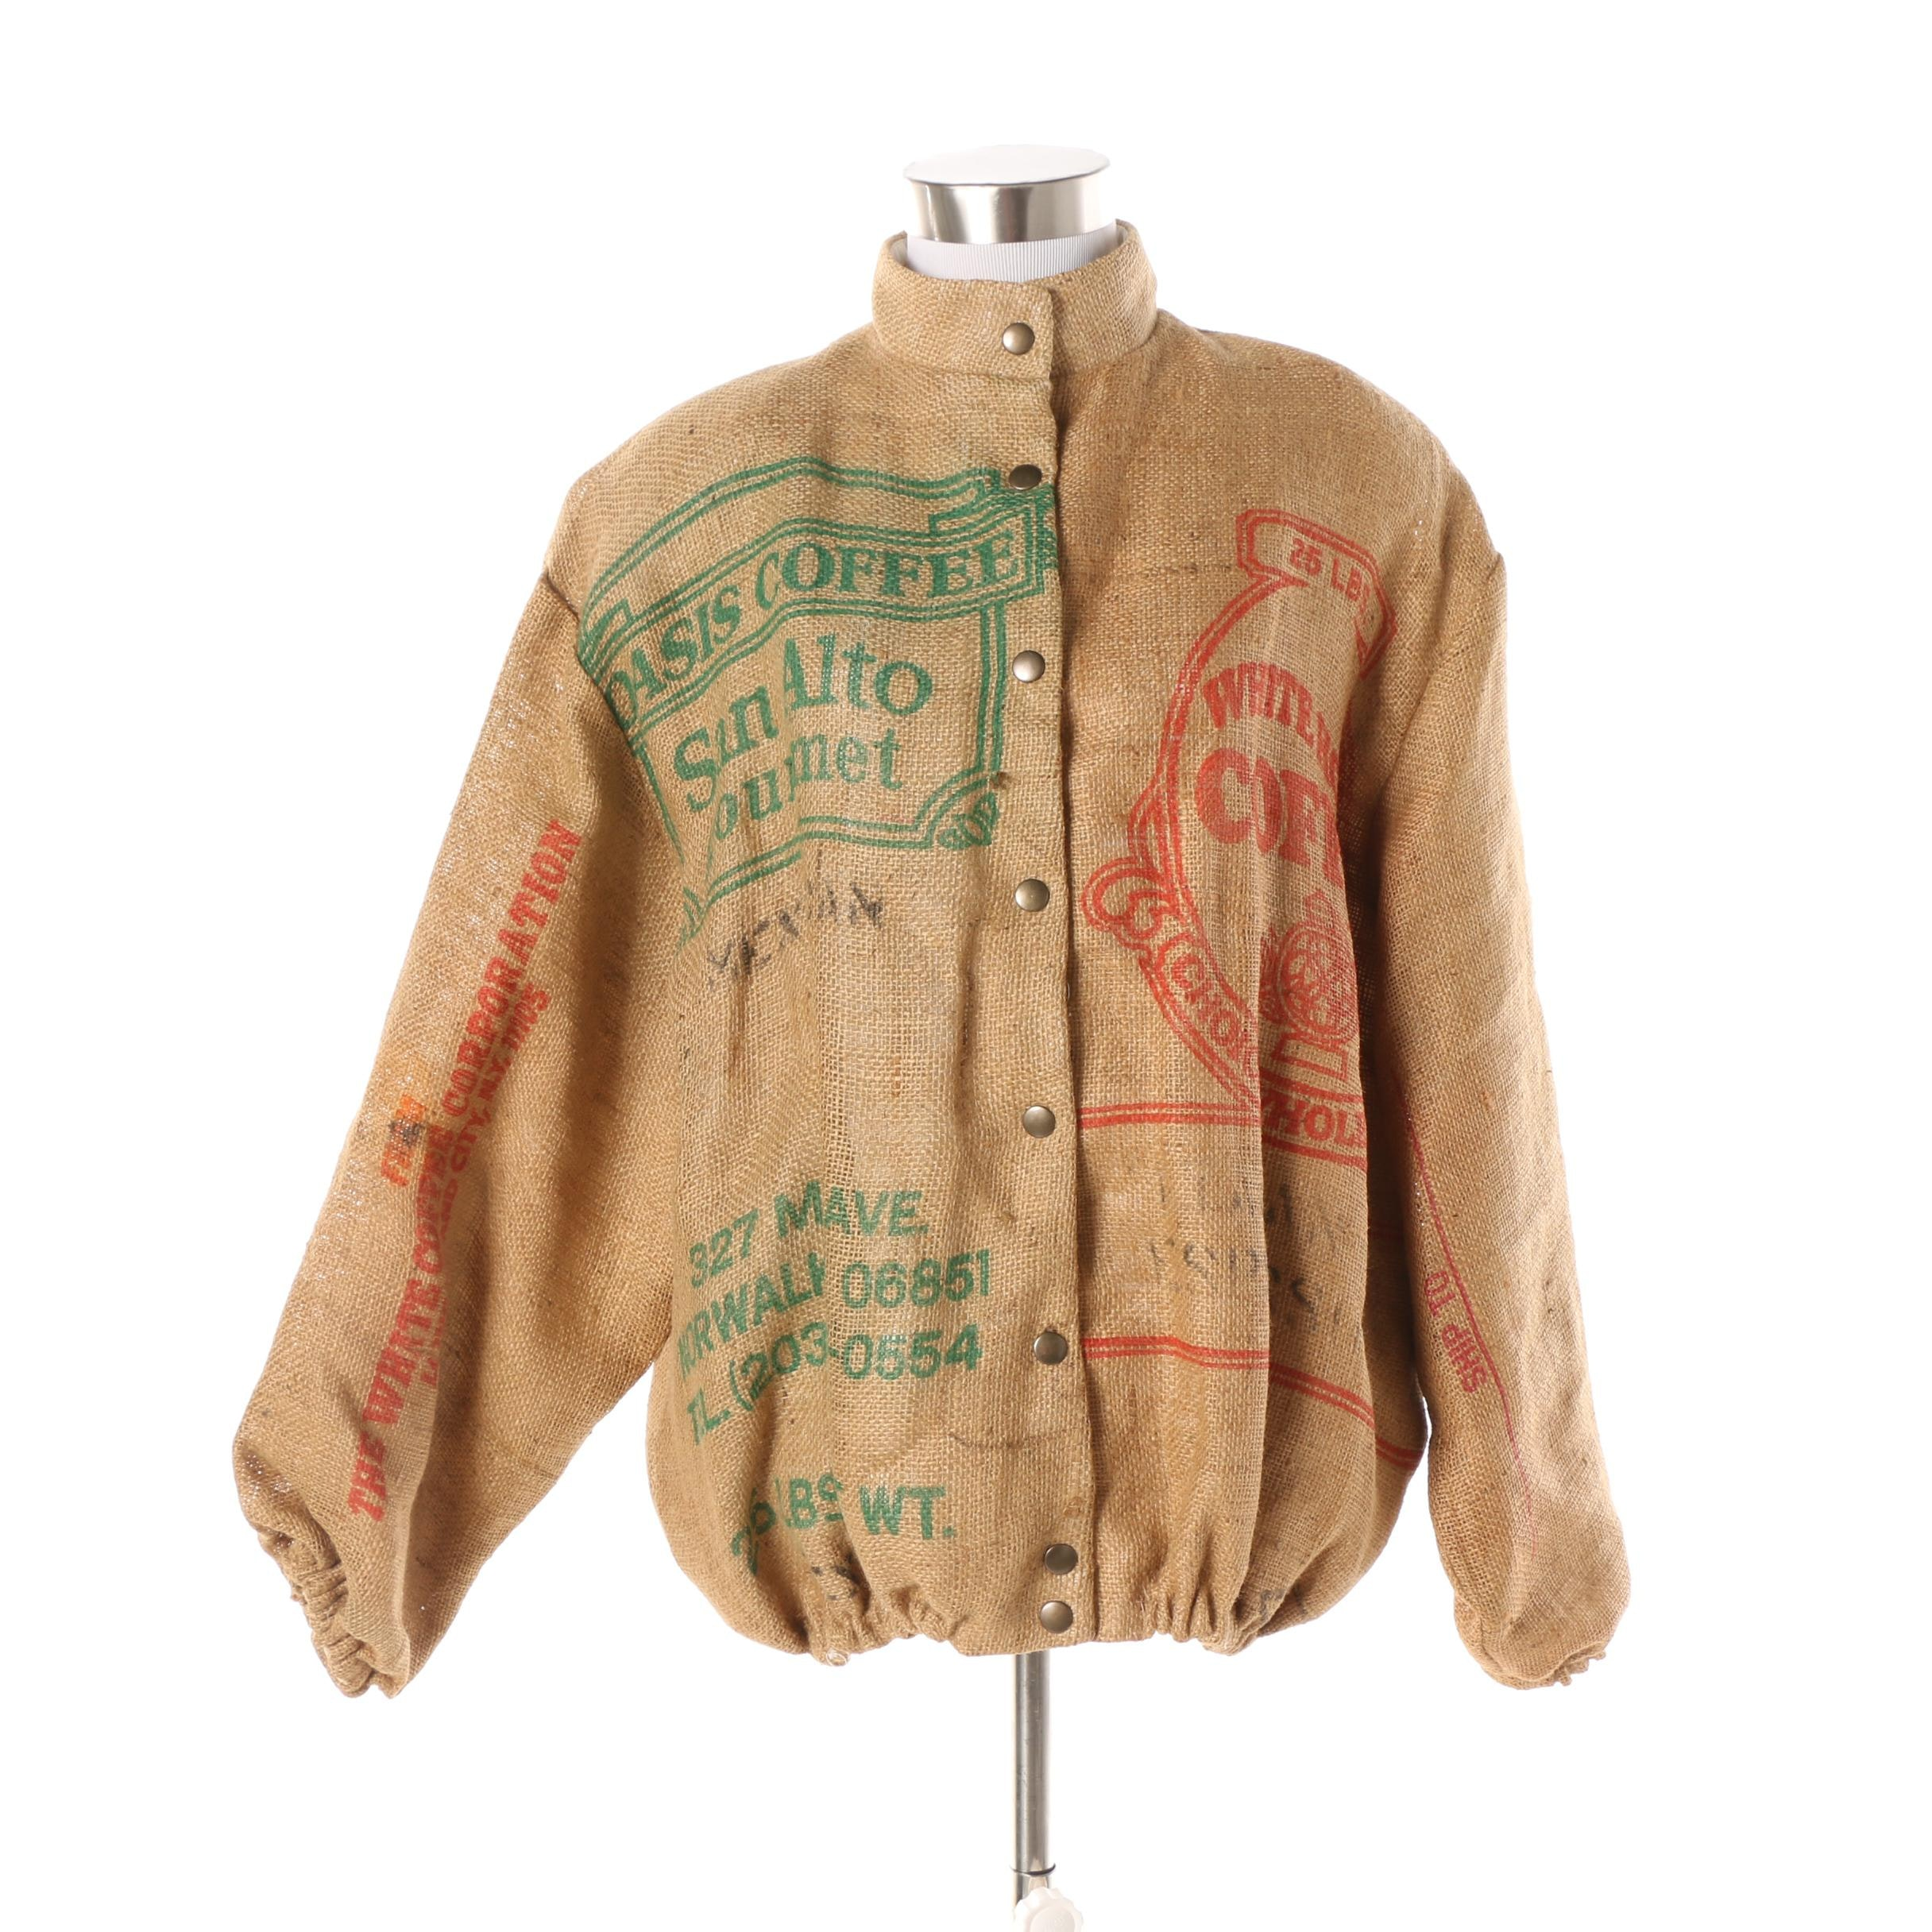 Women's Vintage St. Martin by Jeanette Coffee Logo Burlap Jacket